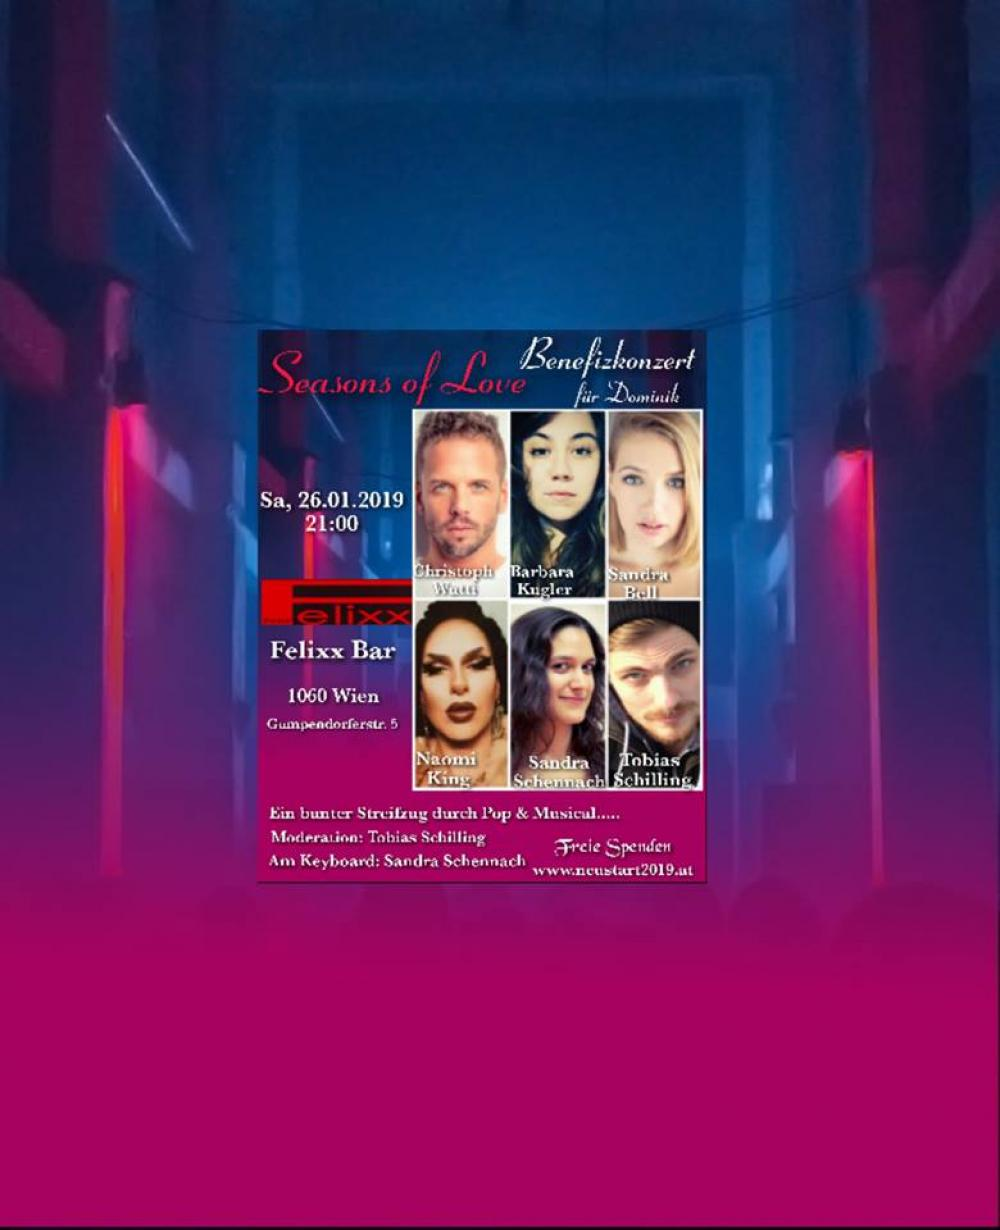 Seasons of Love - Benefizkonzert